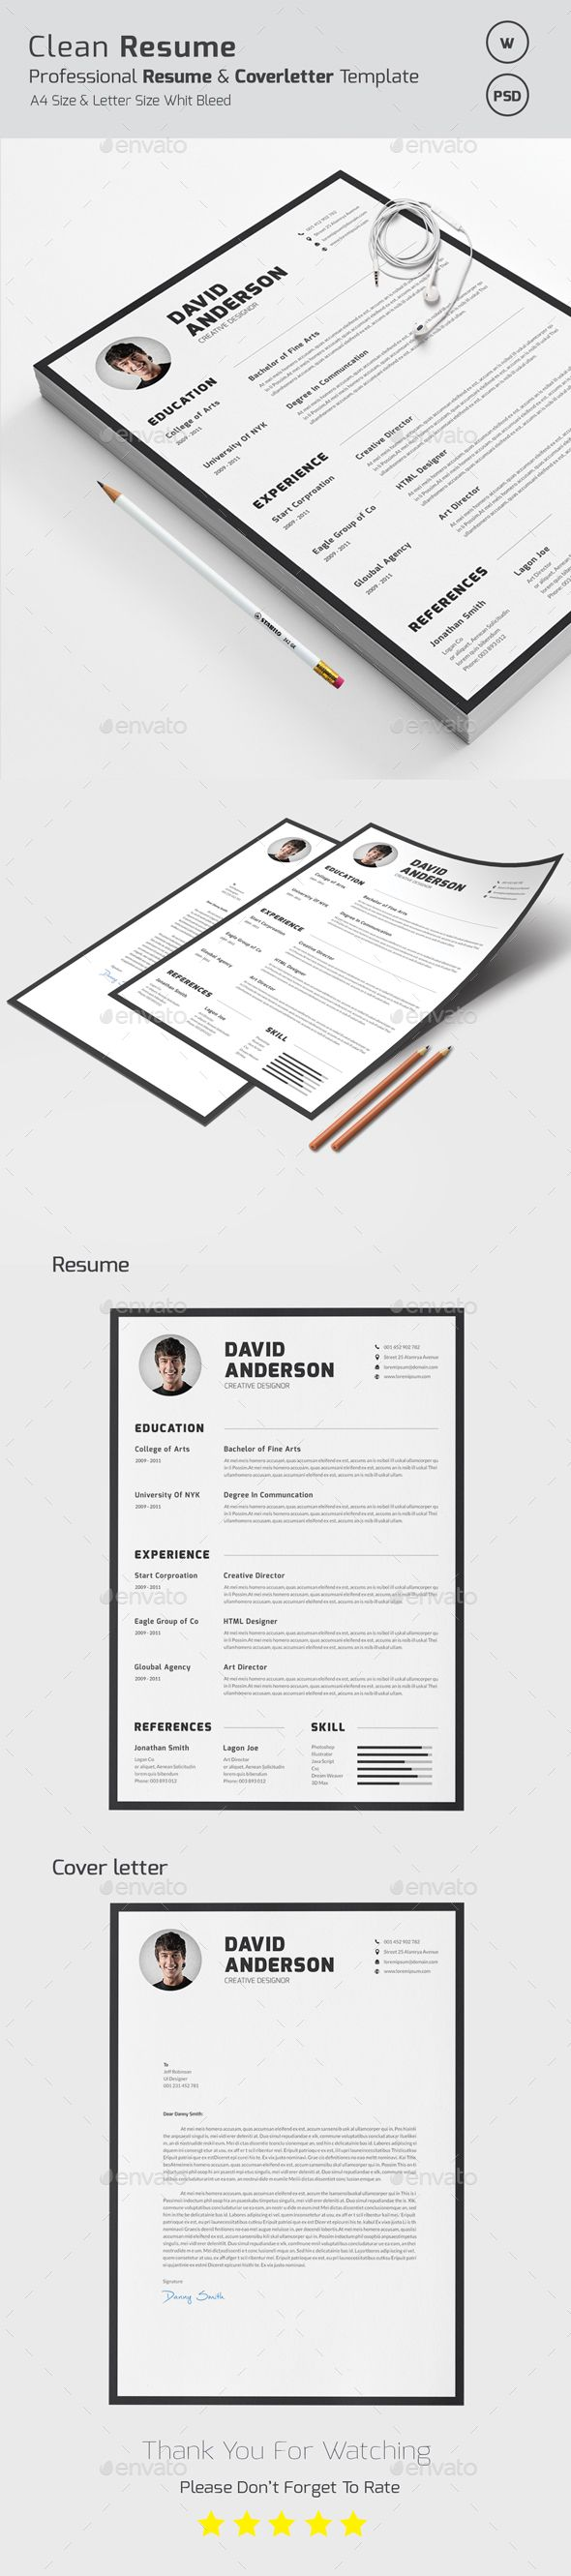 Copywriting Resume Pdf  Best Resume Templates Images On Pinterest Legal Assistant Resumes Excel with Areas Of Expertise Resume Excel Resume  Resumes Stationery Lpn Skills For Resume Excel